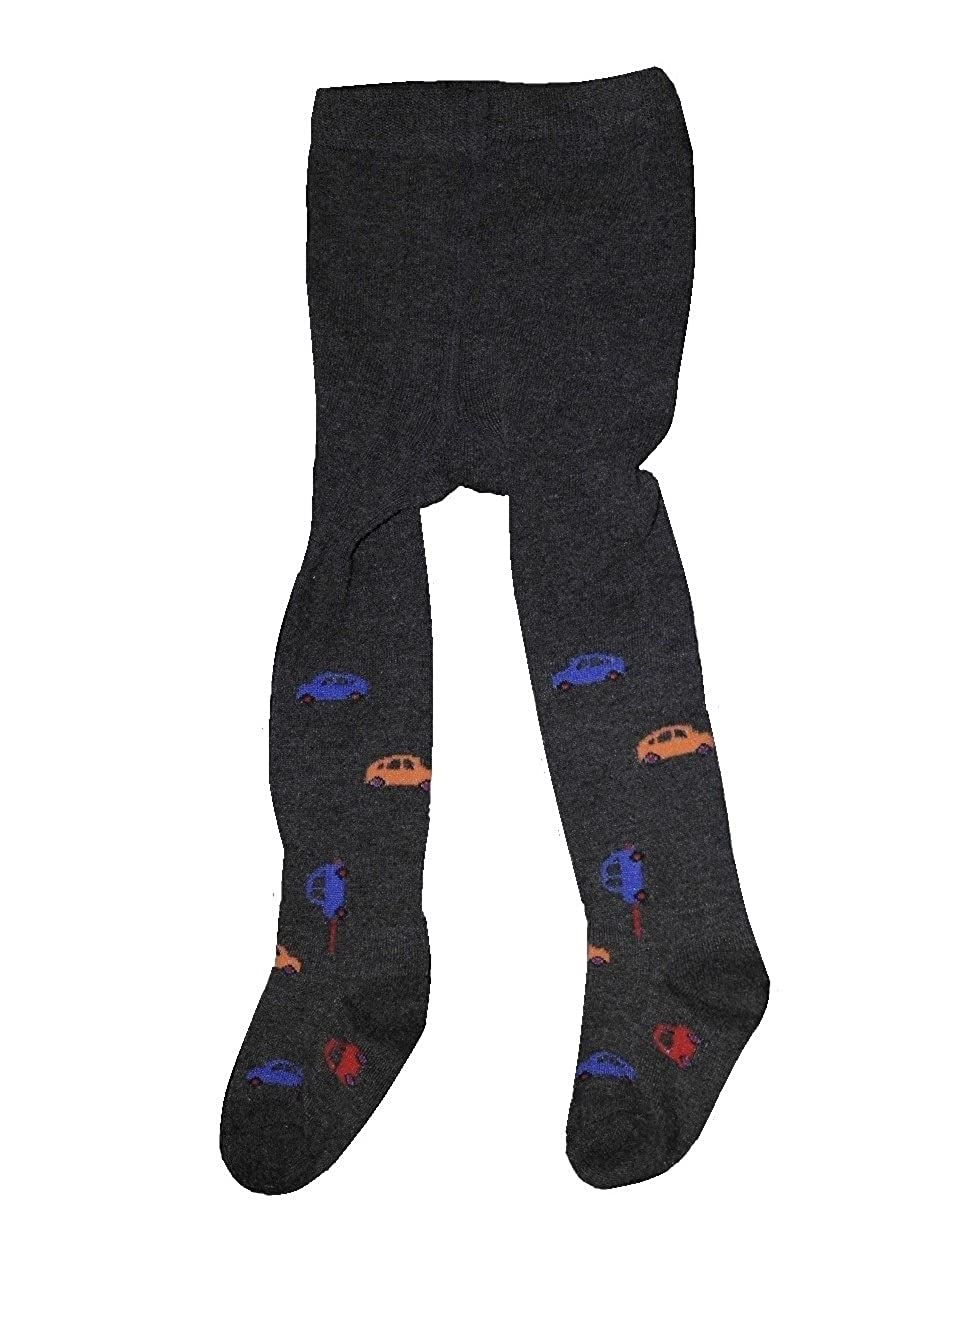 Bomio Toddlers Baby Boys Girls Cotton Warm Tights, Various Patterns and Sizes Available